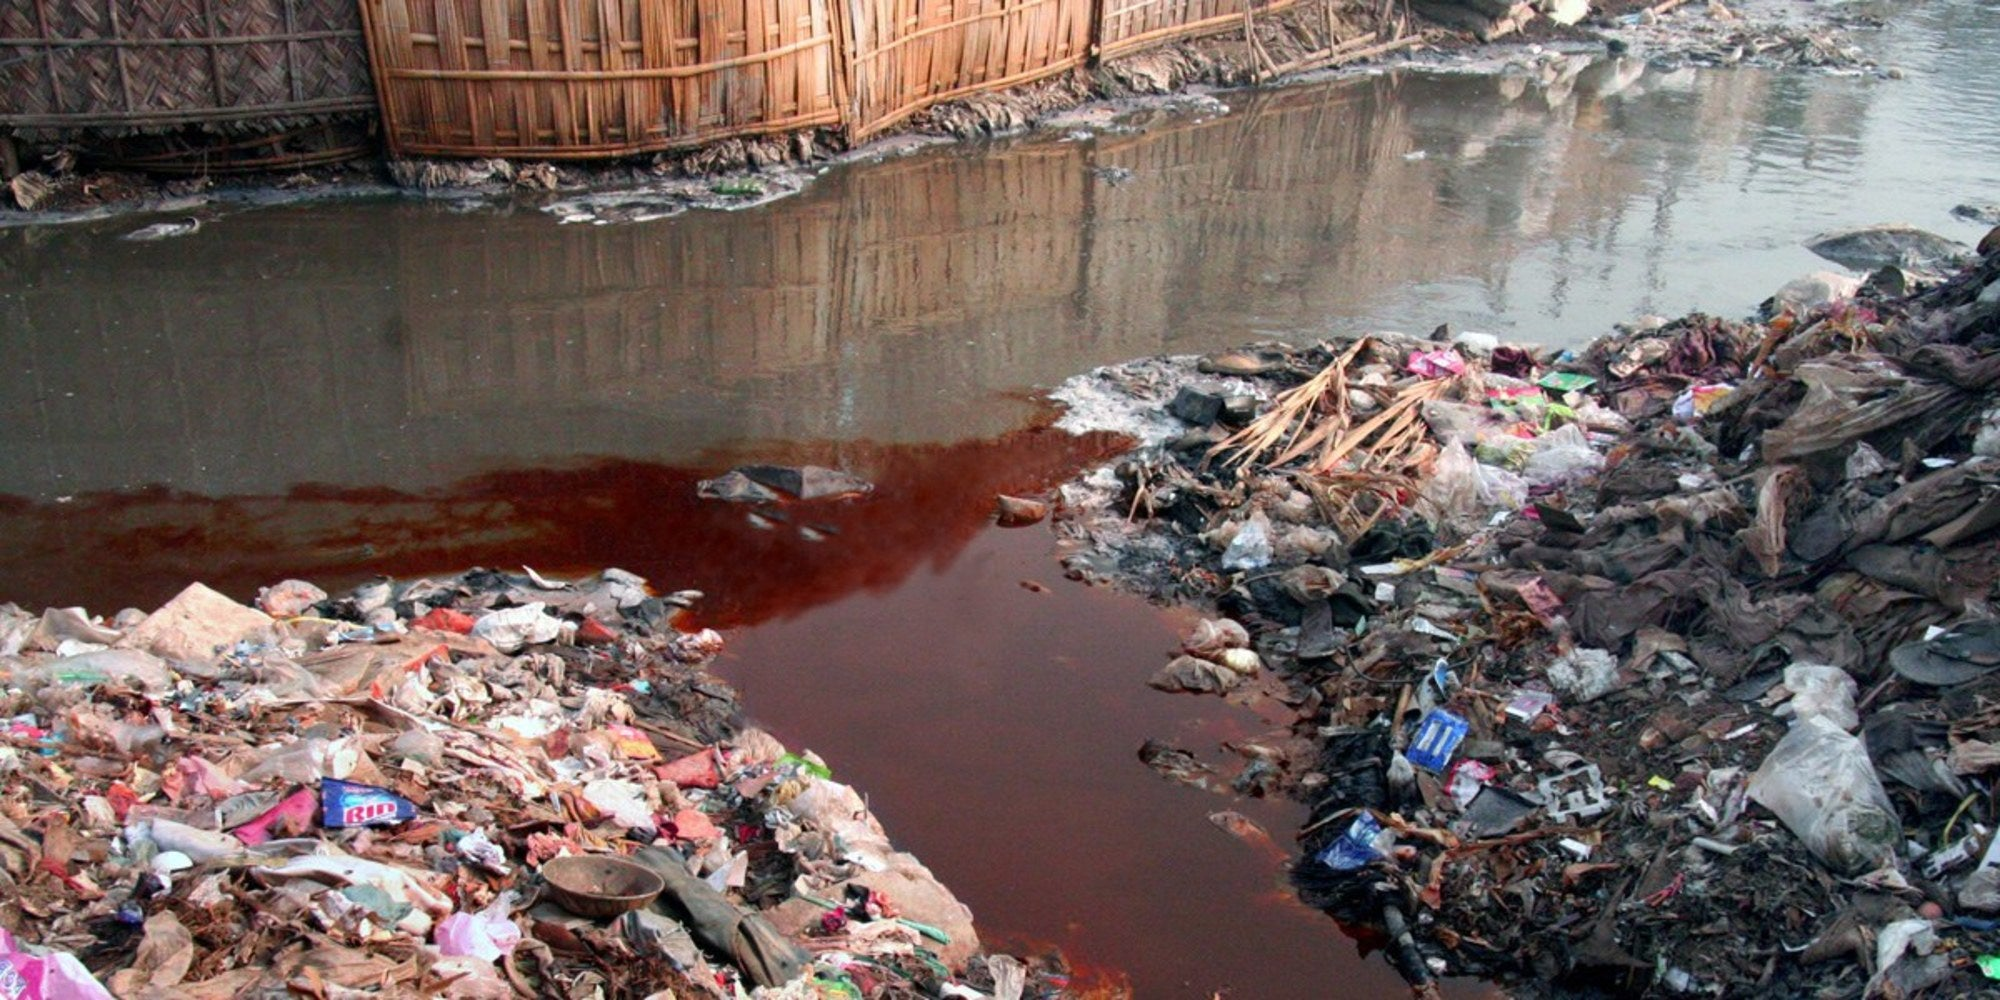 Water pollution in Jian River, China